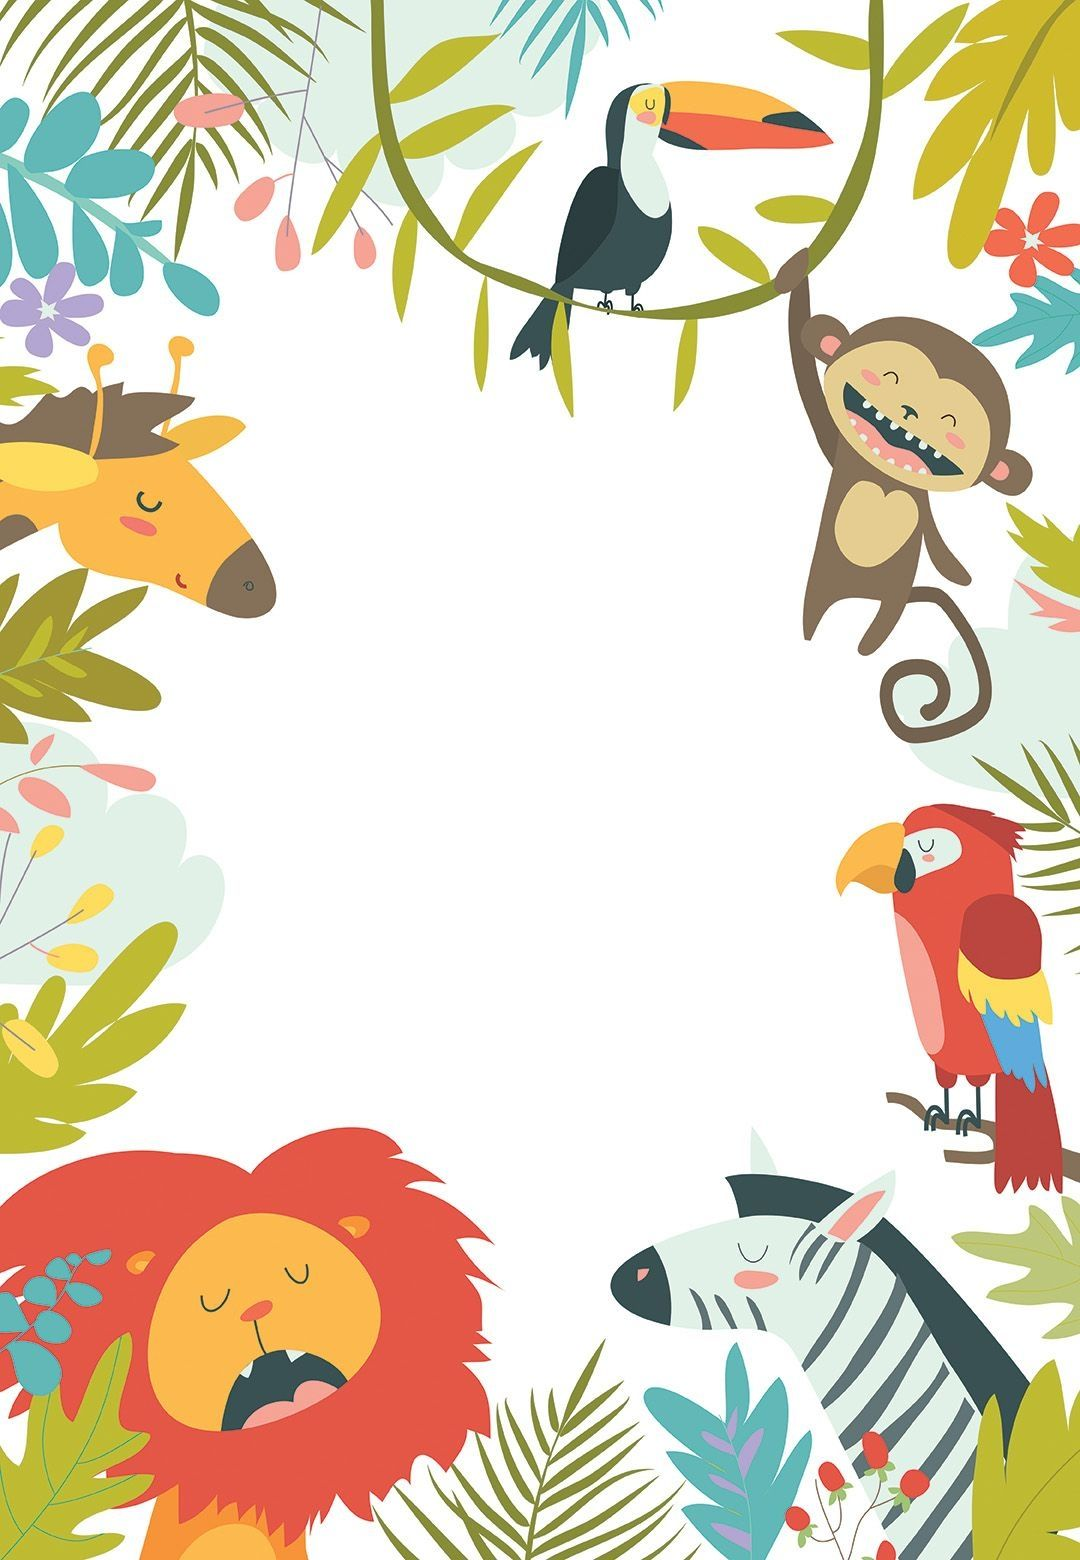 Jungle Theme Invitation Template Ten Outrageous Ideas For Your Jungle Them Animal Birthday Invitation Jungle Theme Birthday Free Birthday Invitation Templates